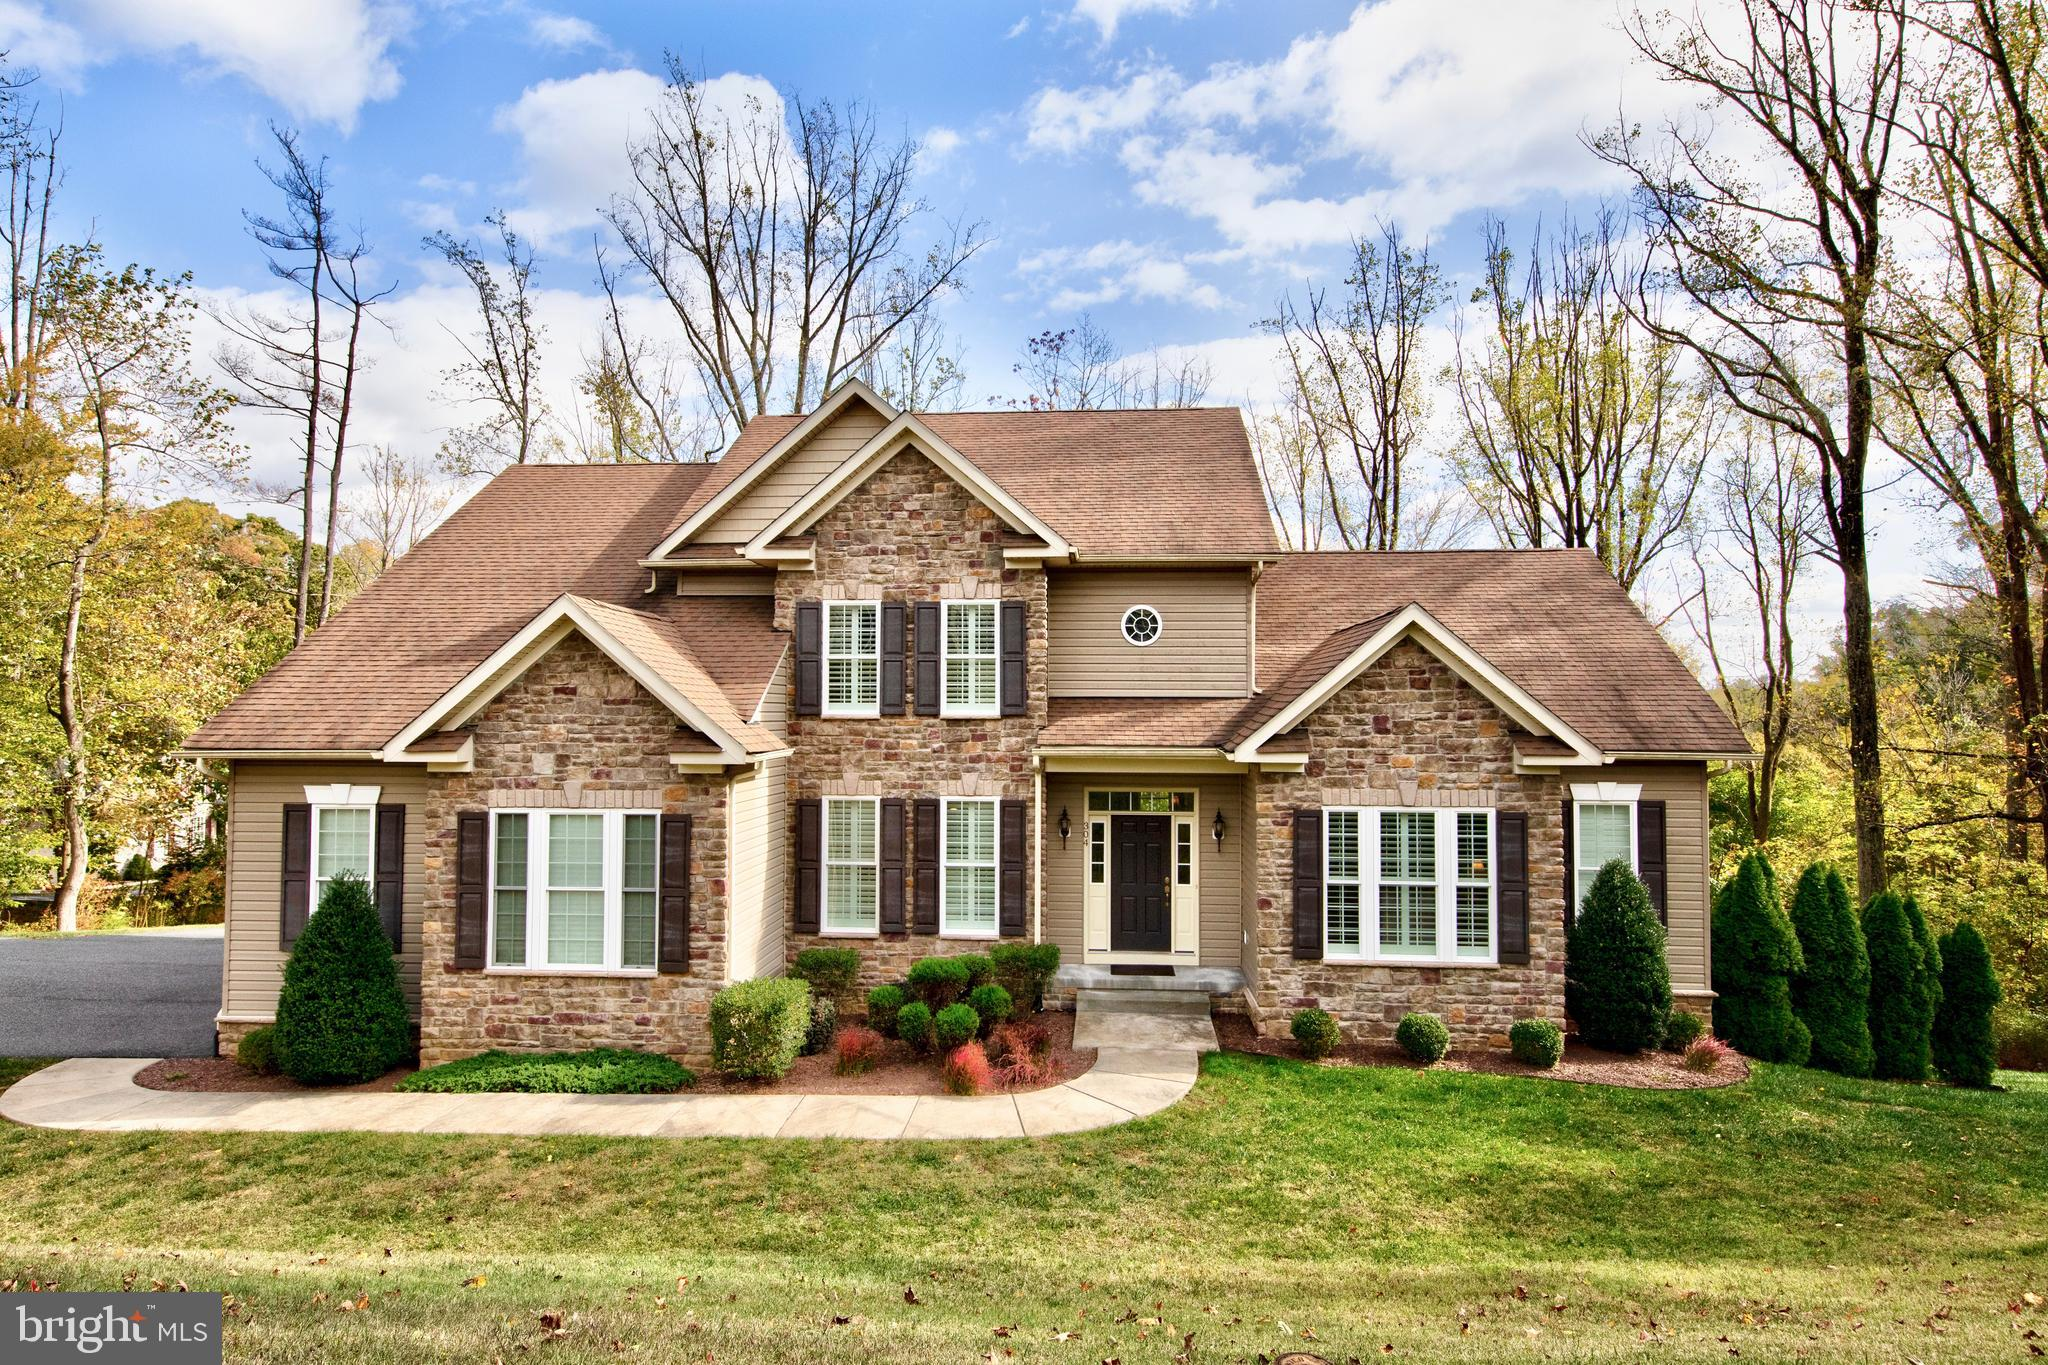 304 PATTERSON MILL Rd, Bel Air, MD, 21015